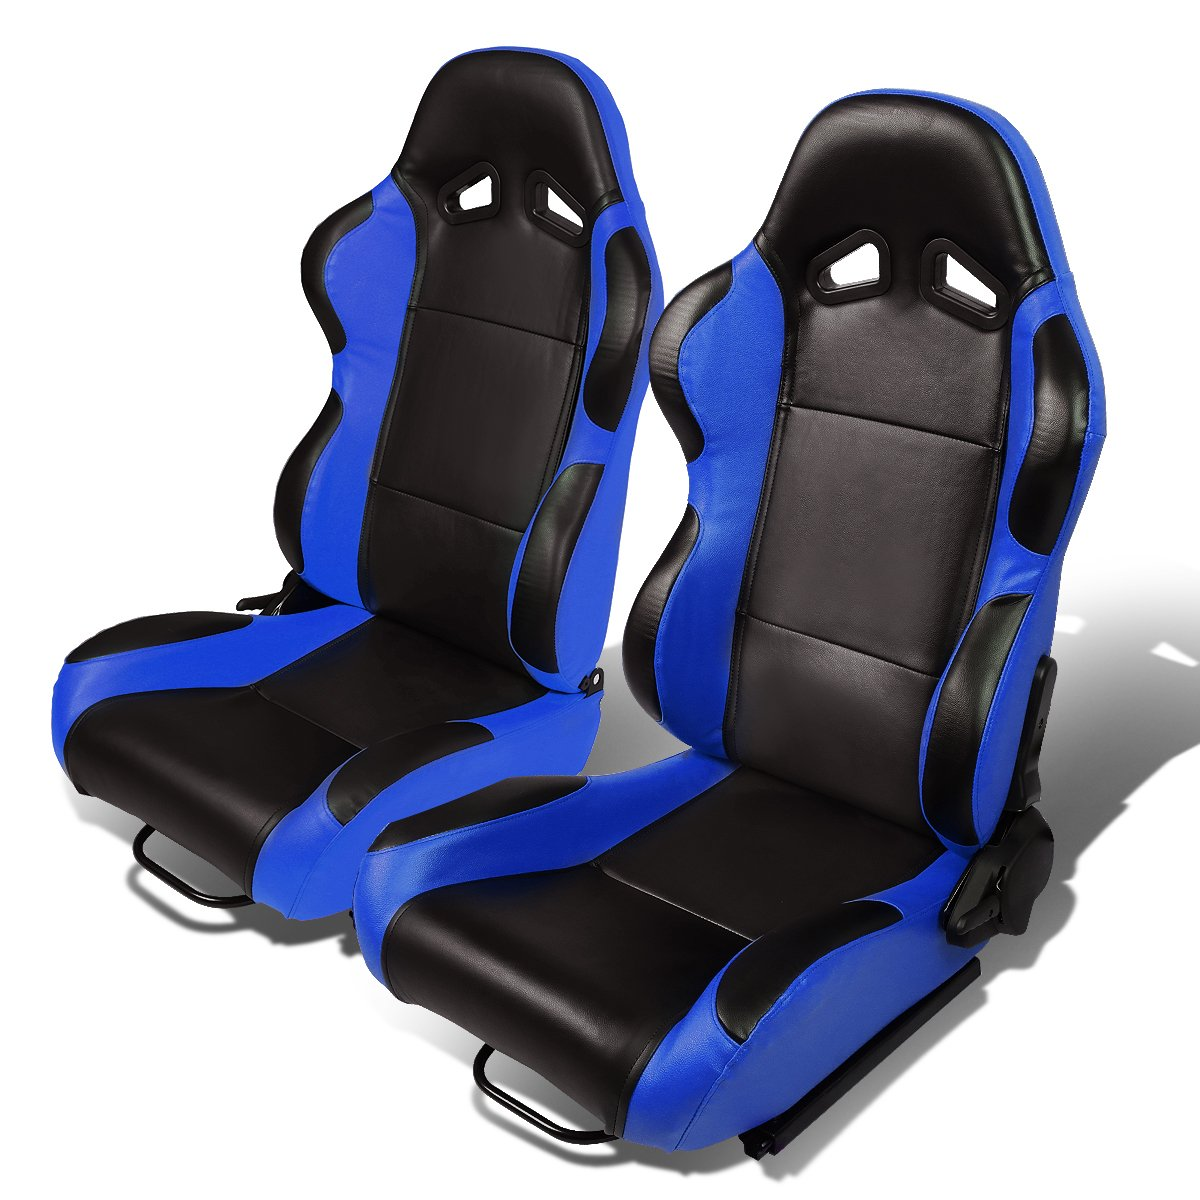 Set of 2 Universal Type-R PVC Leather Reclinable Racing Seats w/Sliders (Black Body/Blue Side) Auto Dynasty